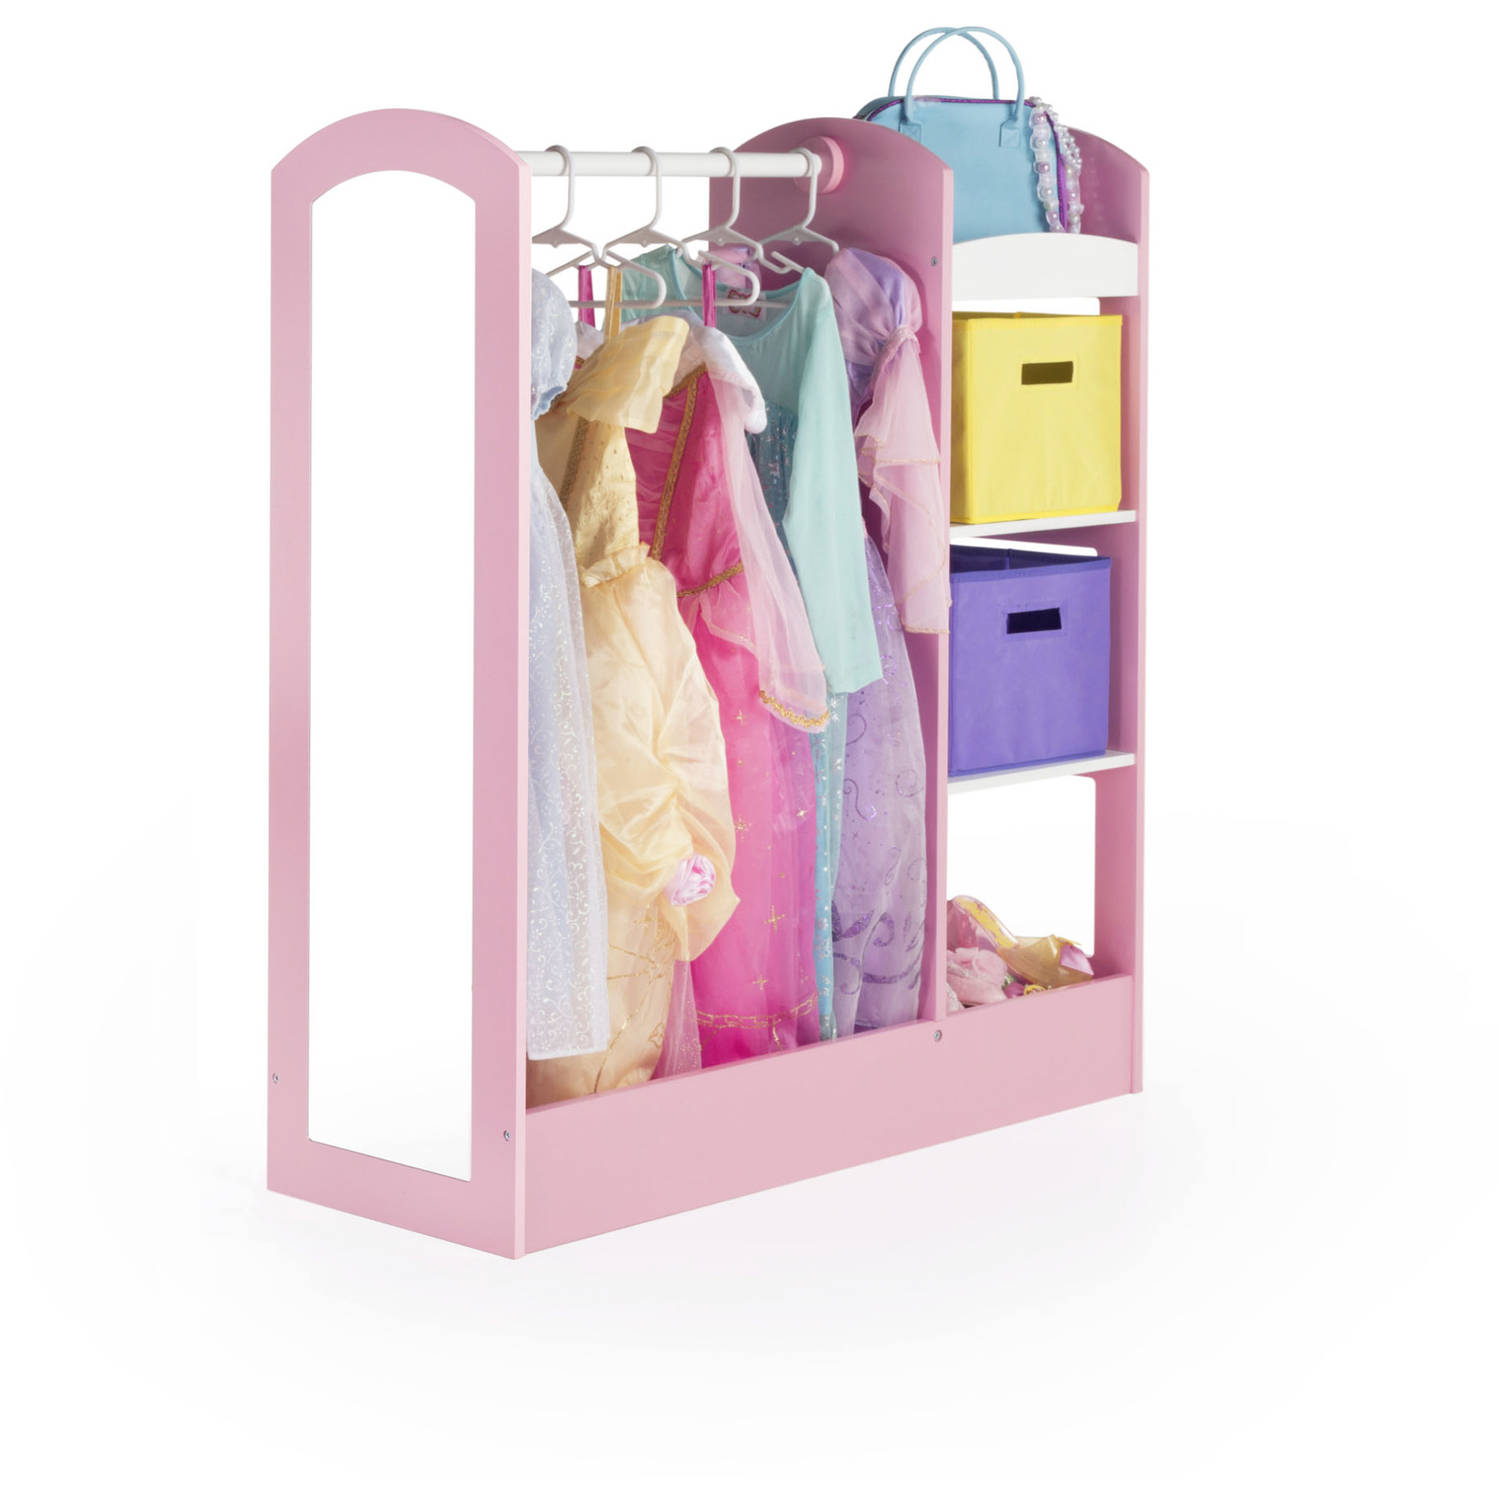 Guidecraft See and Store Dress-Up Center, Pastel